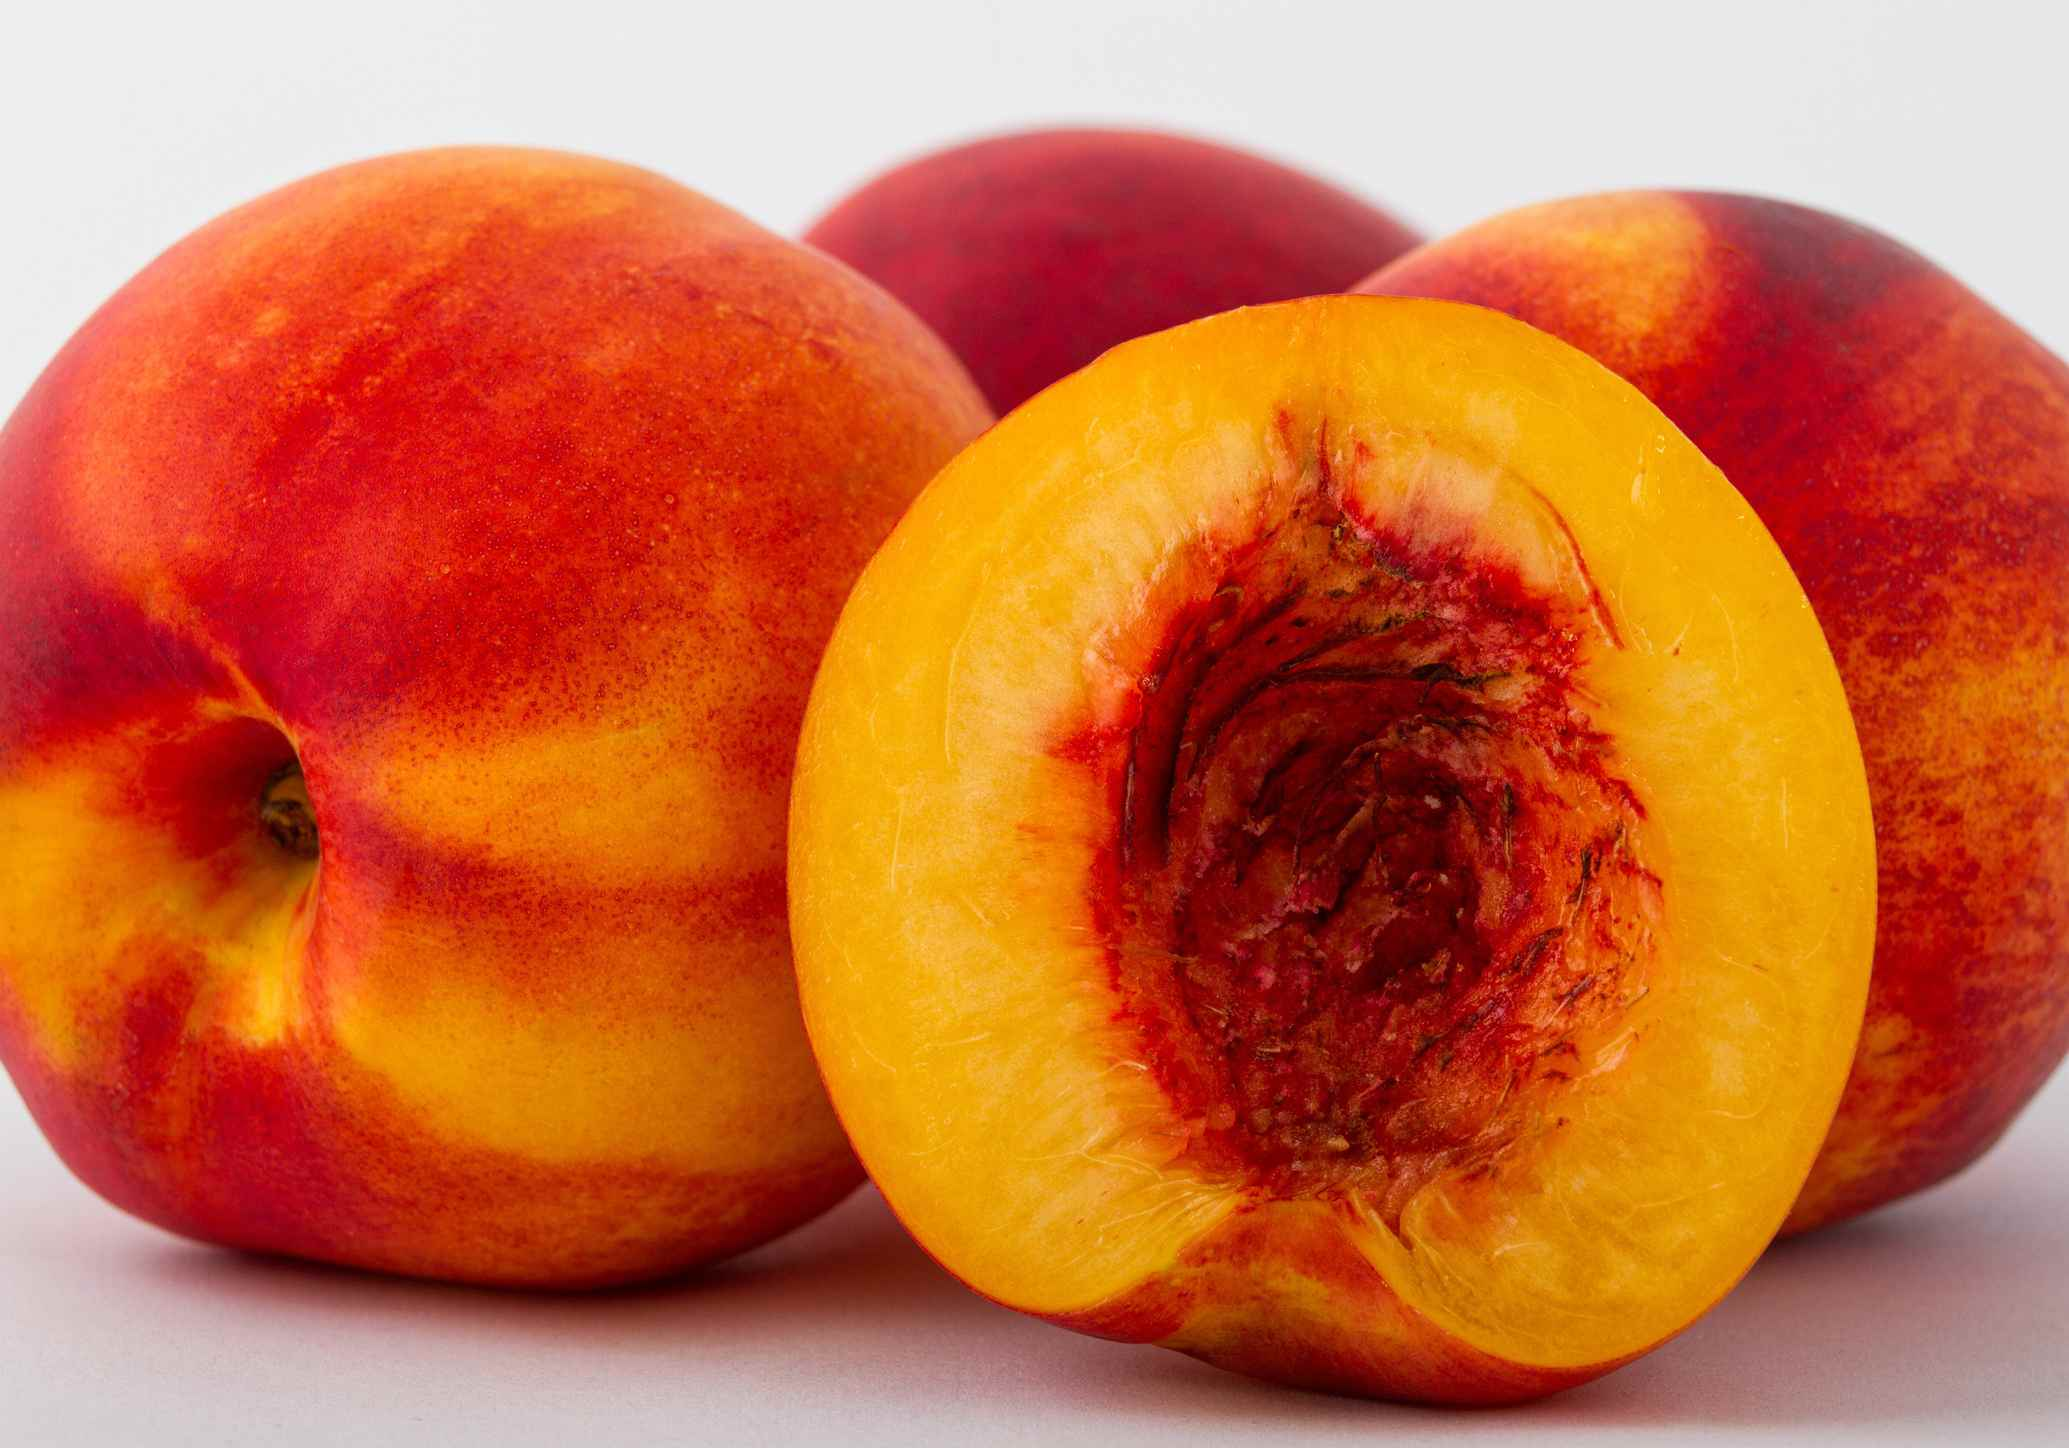 Peaches with one cut open and the pit removed.